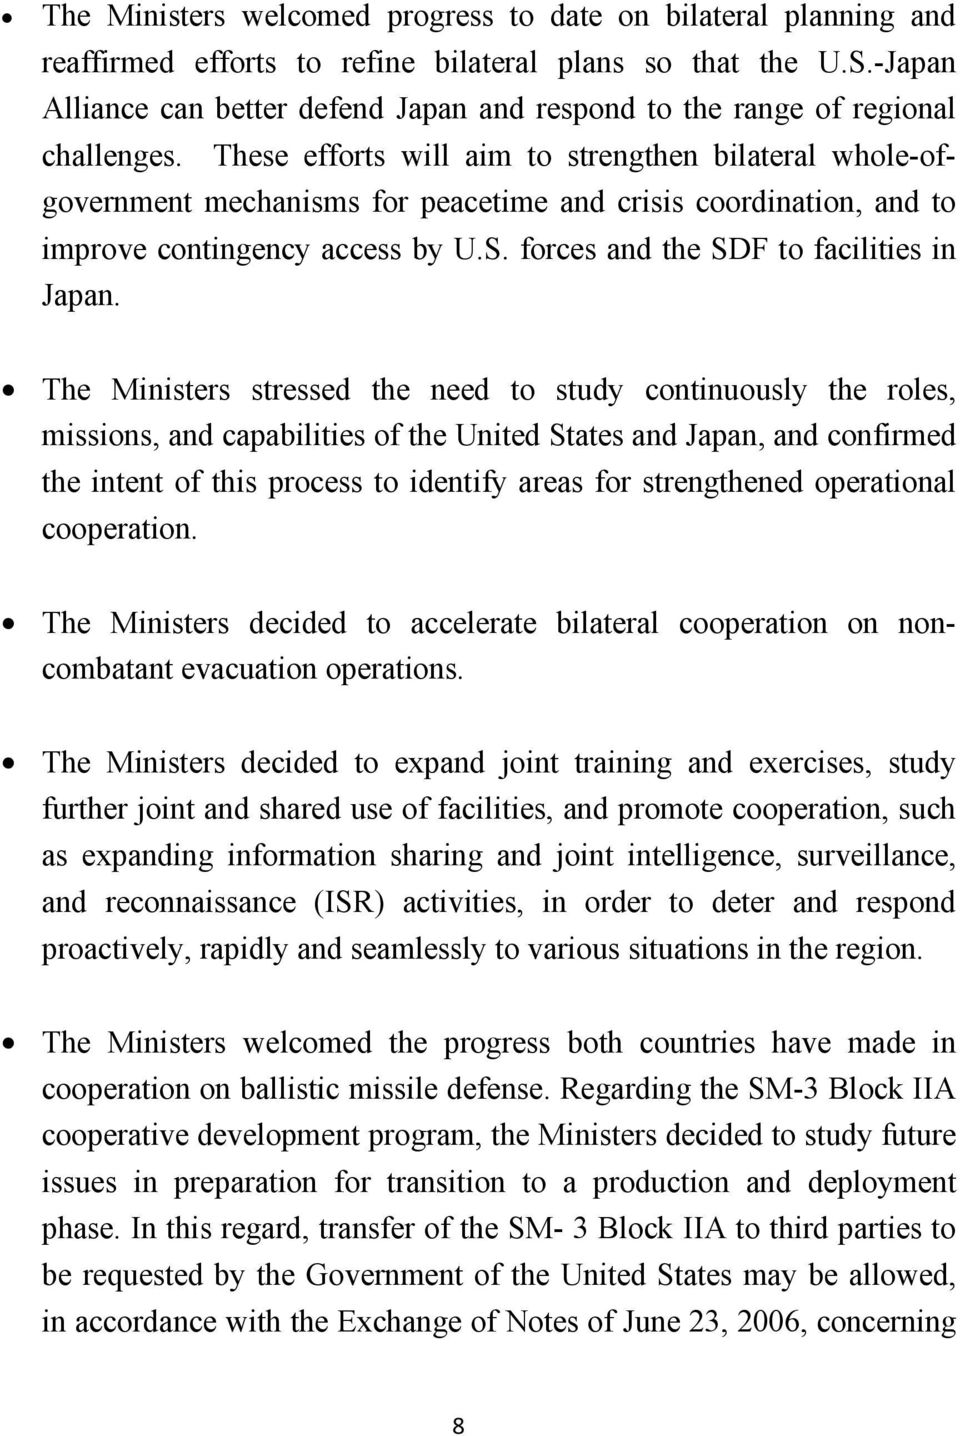 These efforts will aim to strengthen bilateral whole-ofgovernment mechanisms for peacetime and crisis coordination, and to improve contingency access by U.S. forces and the SDF to facilities in Japan.